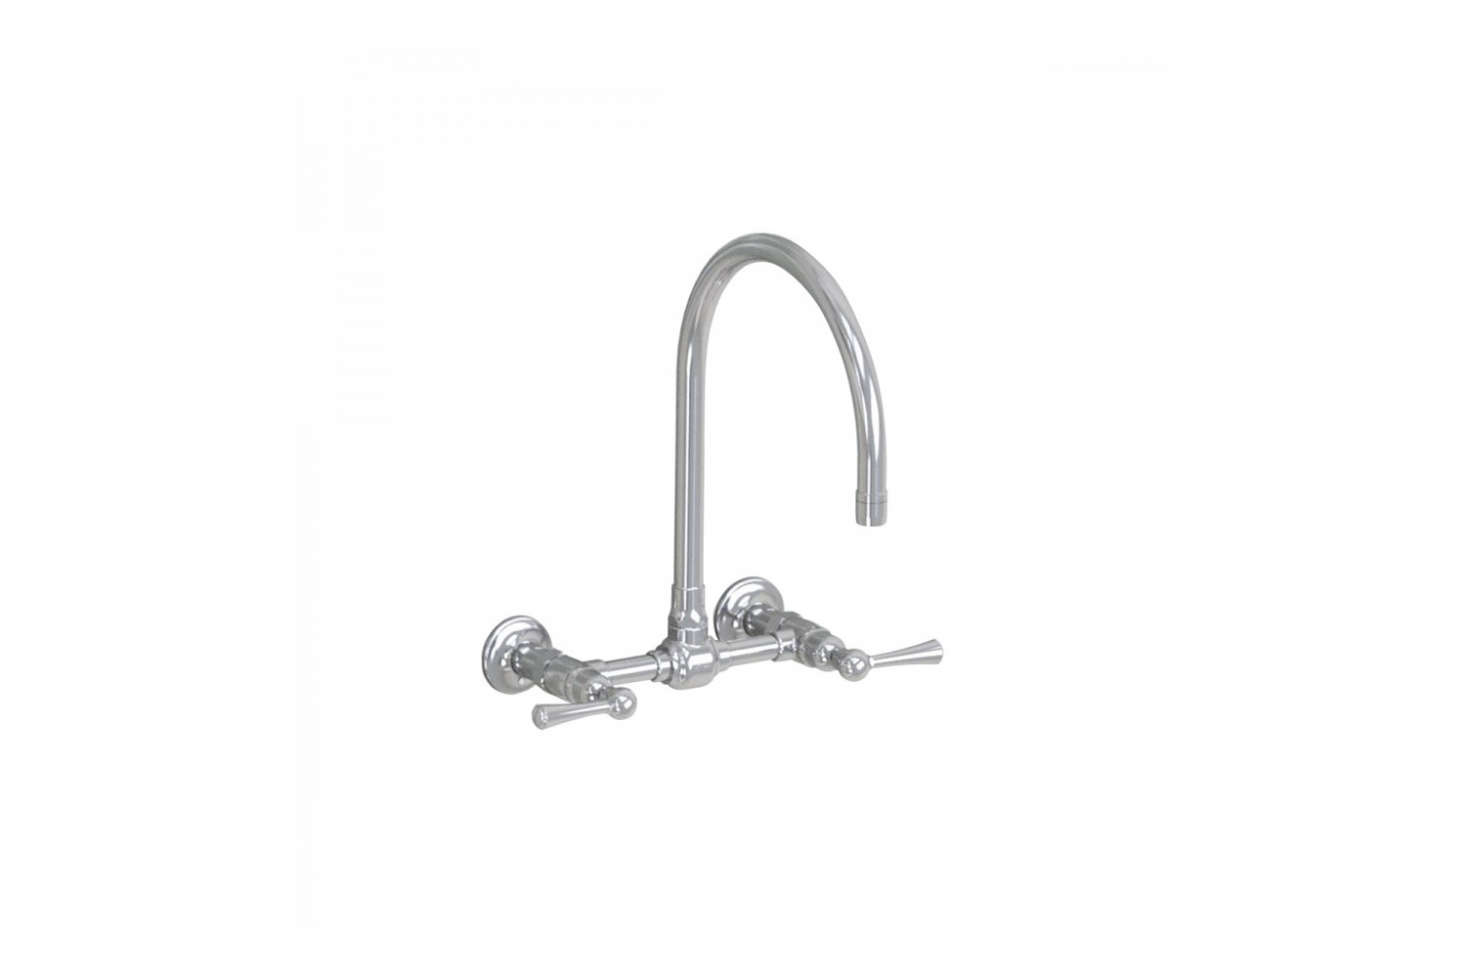 The Jaclo Wall Mount Faucet with a 10-inch swivel spout and metal lever; $1,425 at Jaclo.